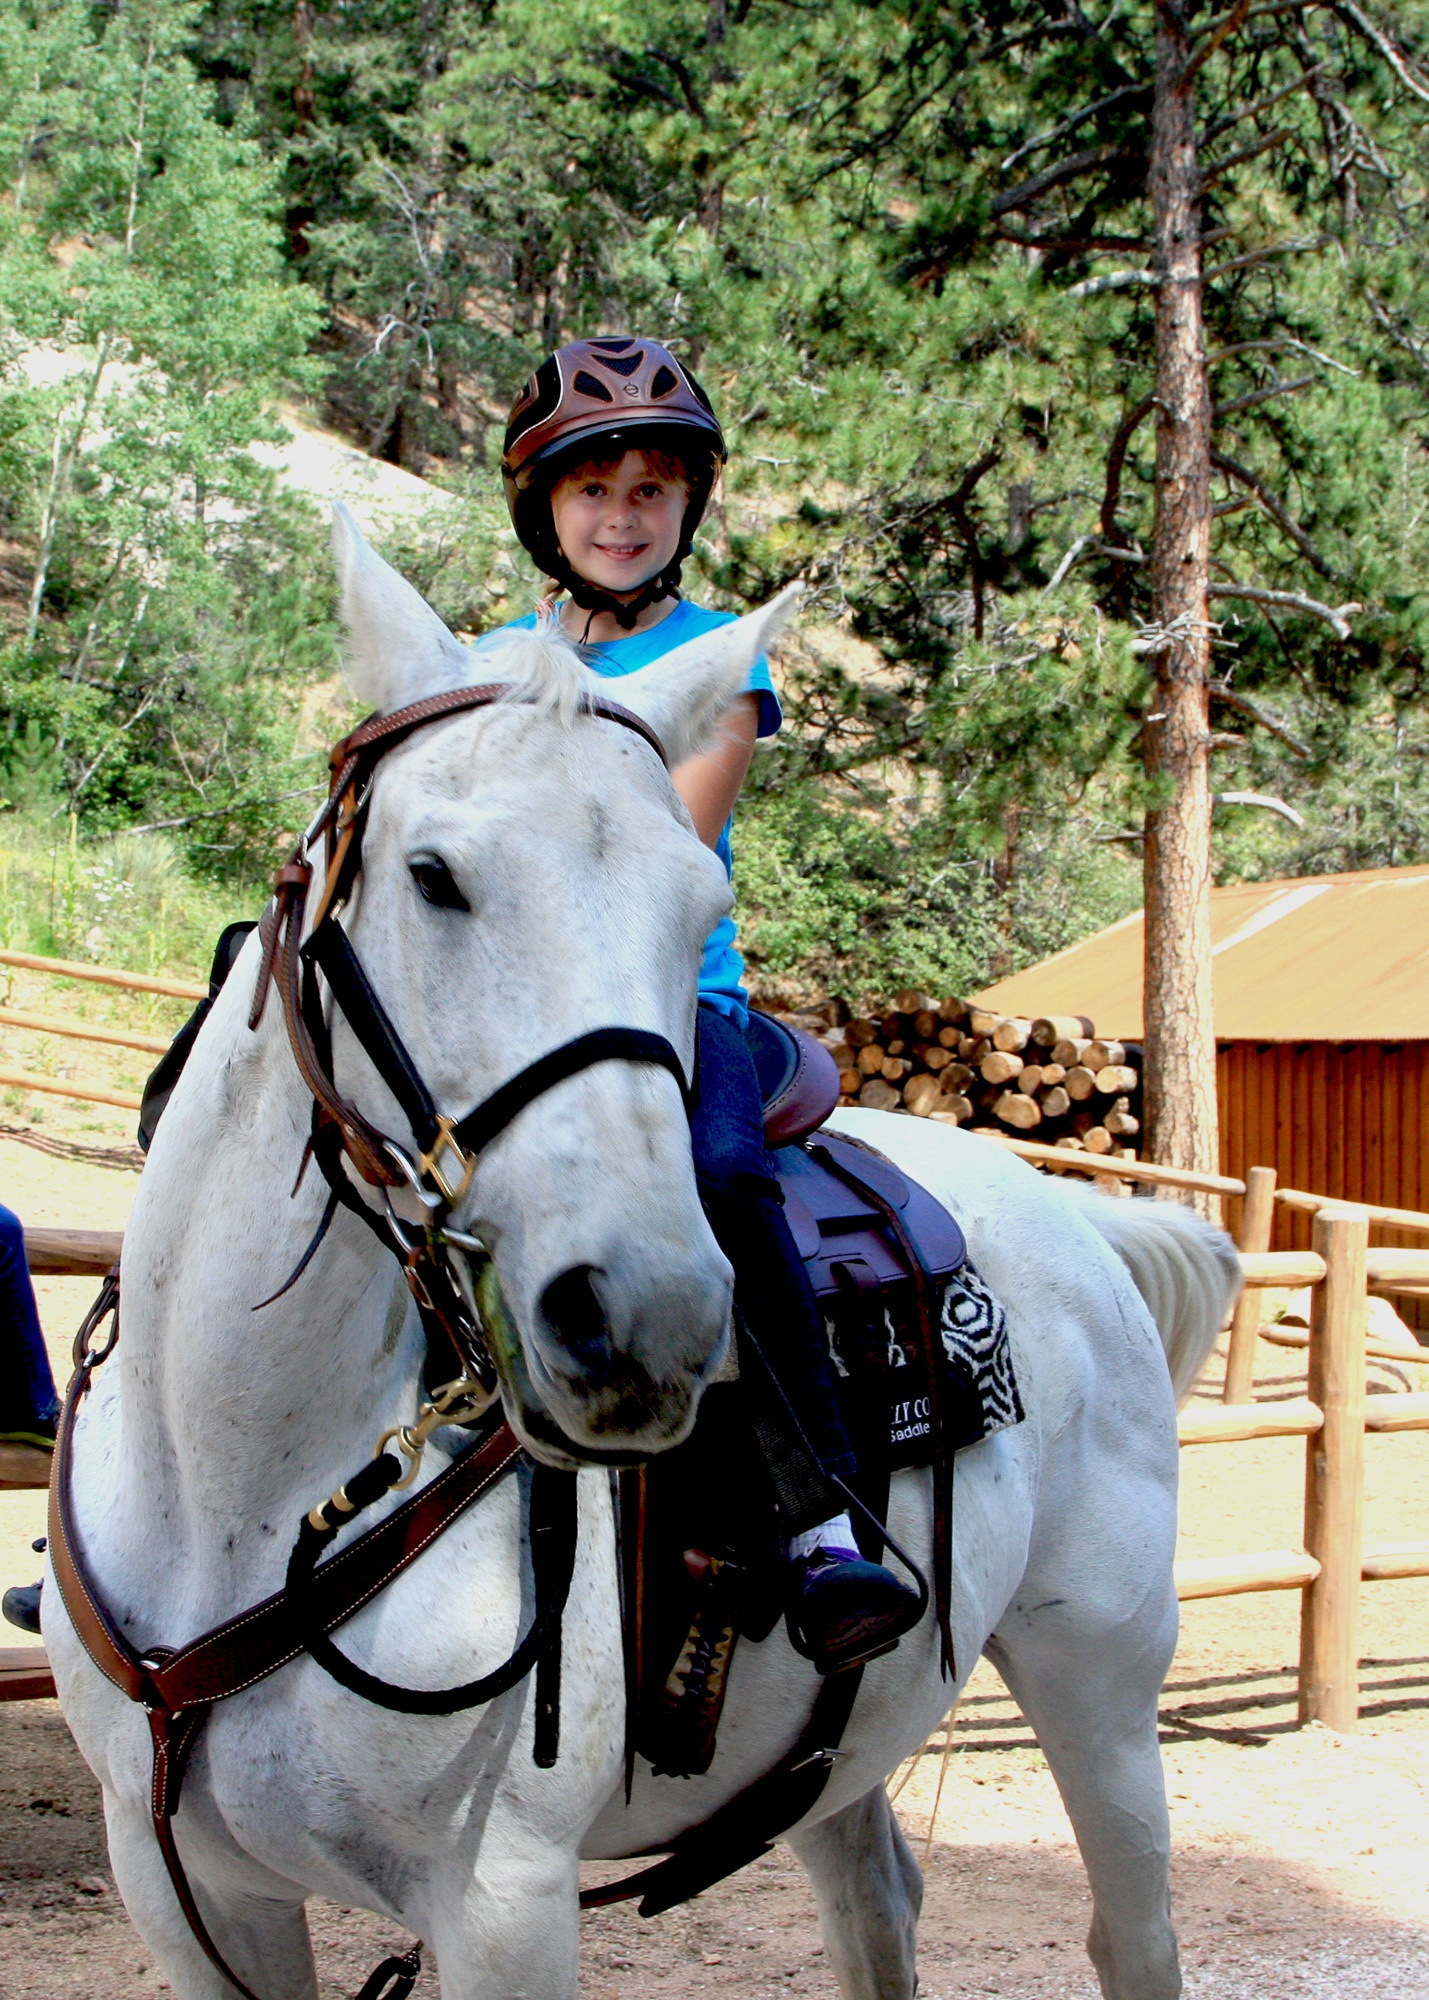 Horseback riding is included at Broadmoor Emerald Valley